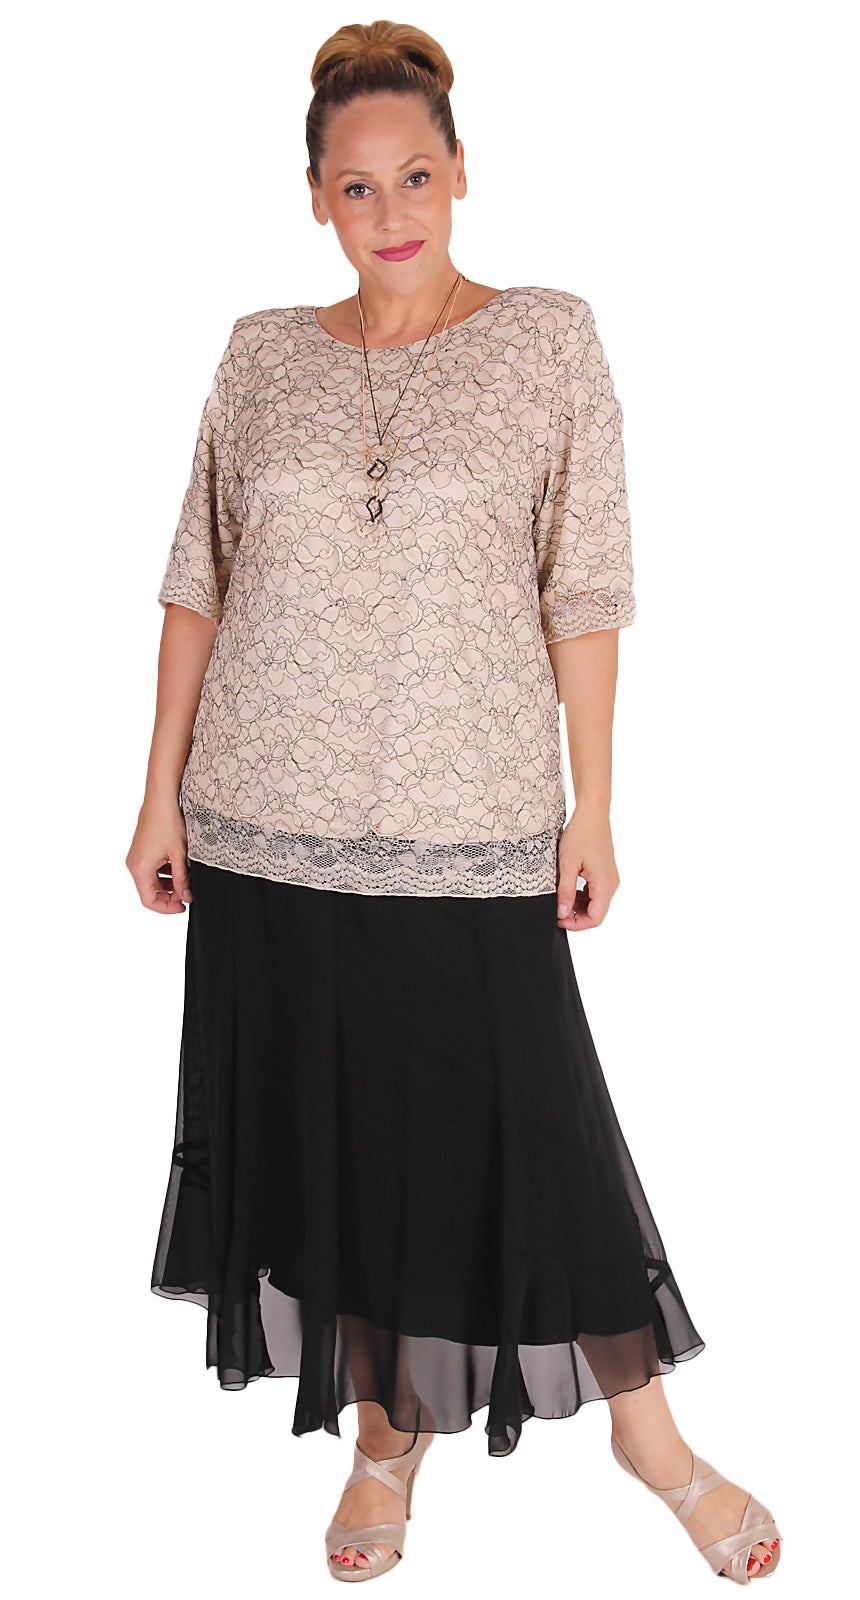 Karl Joseph Lined Chiffon Eight Gored Skirt Black